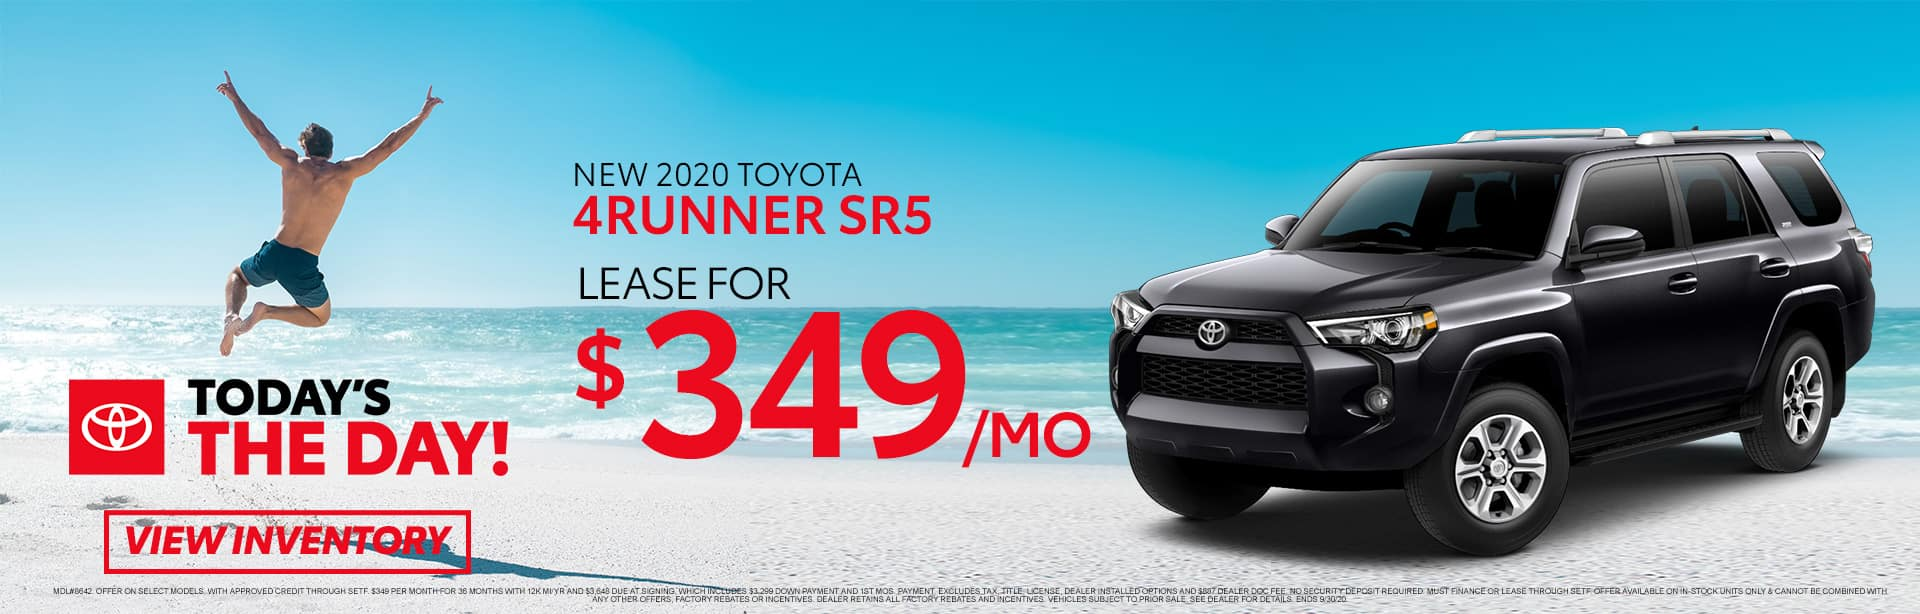 New 2020 Toyota 4Runner SR5 at Toyota of Fort Walton Beach!